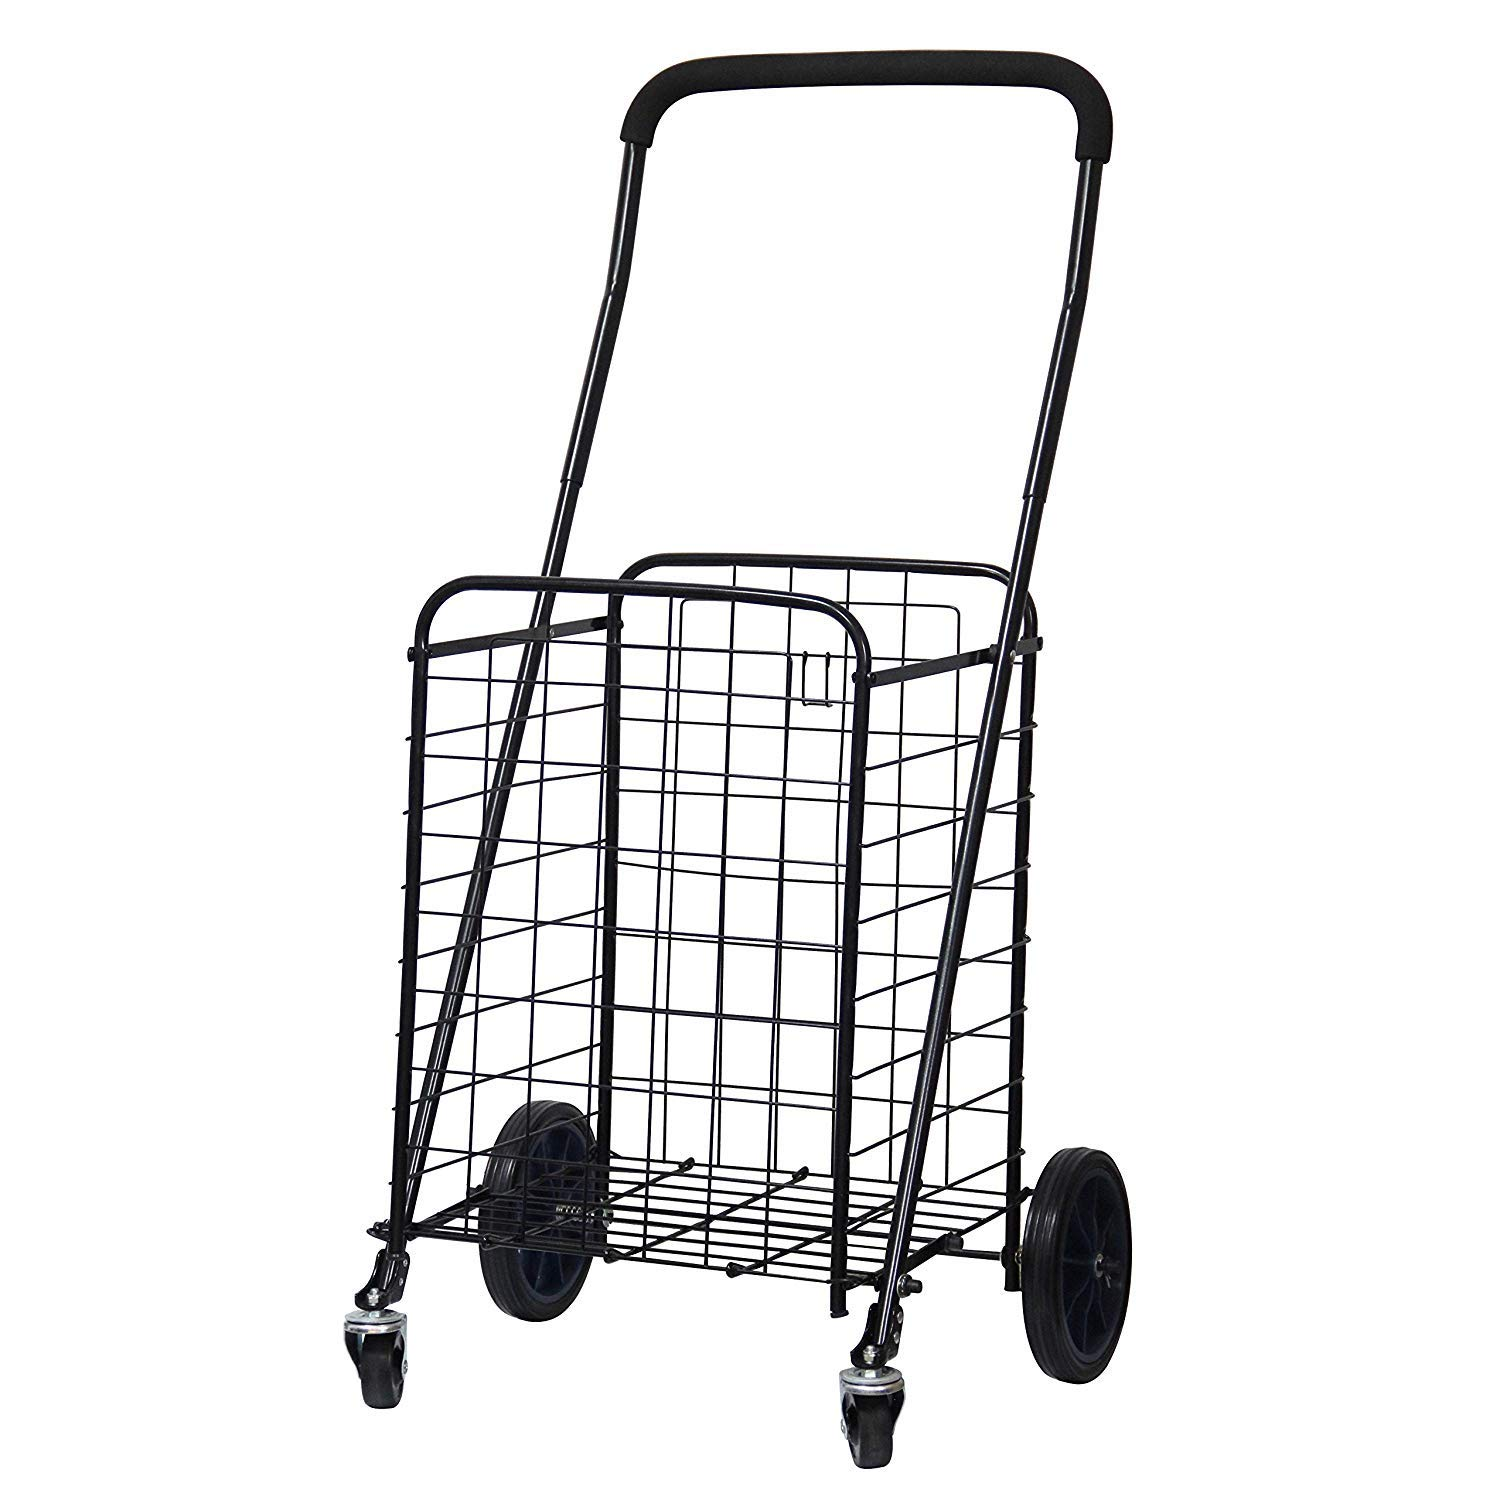 BLISSUN Utility Shopping Cart with Rolling Swivel Wheels (Black) by Blissun